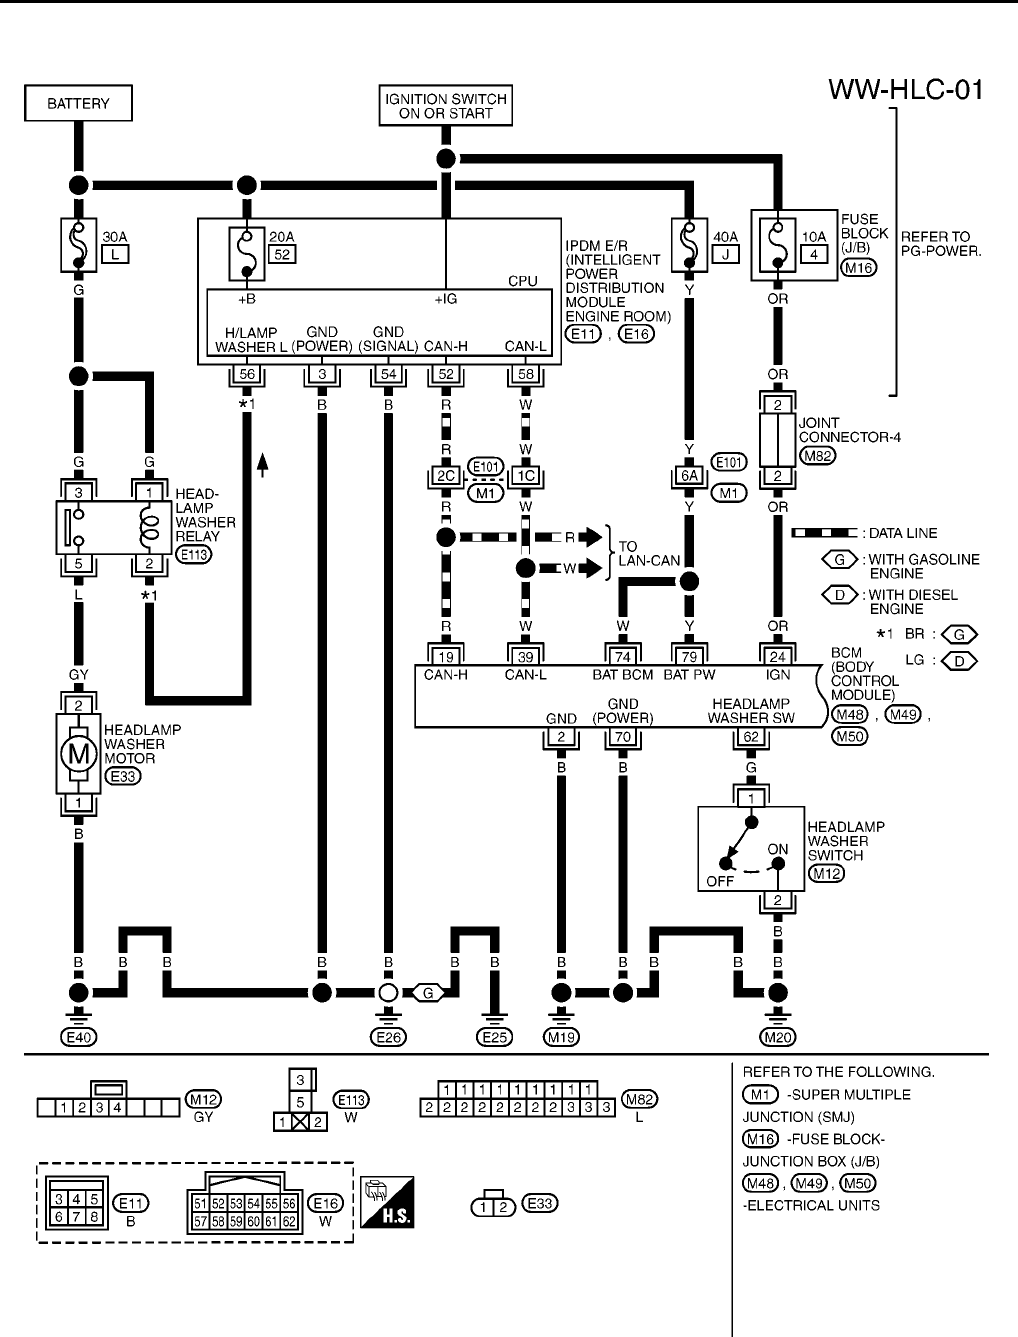 nissan micra wiring diagrams 2003 2005 36 pdf rh manuals co nissan micra k13 wiring diagram nissan micra wiring diagram pdf